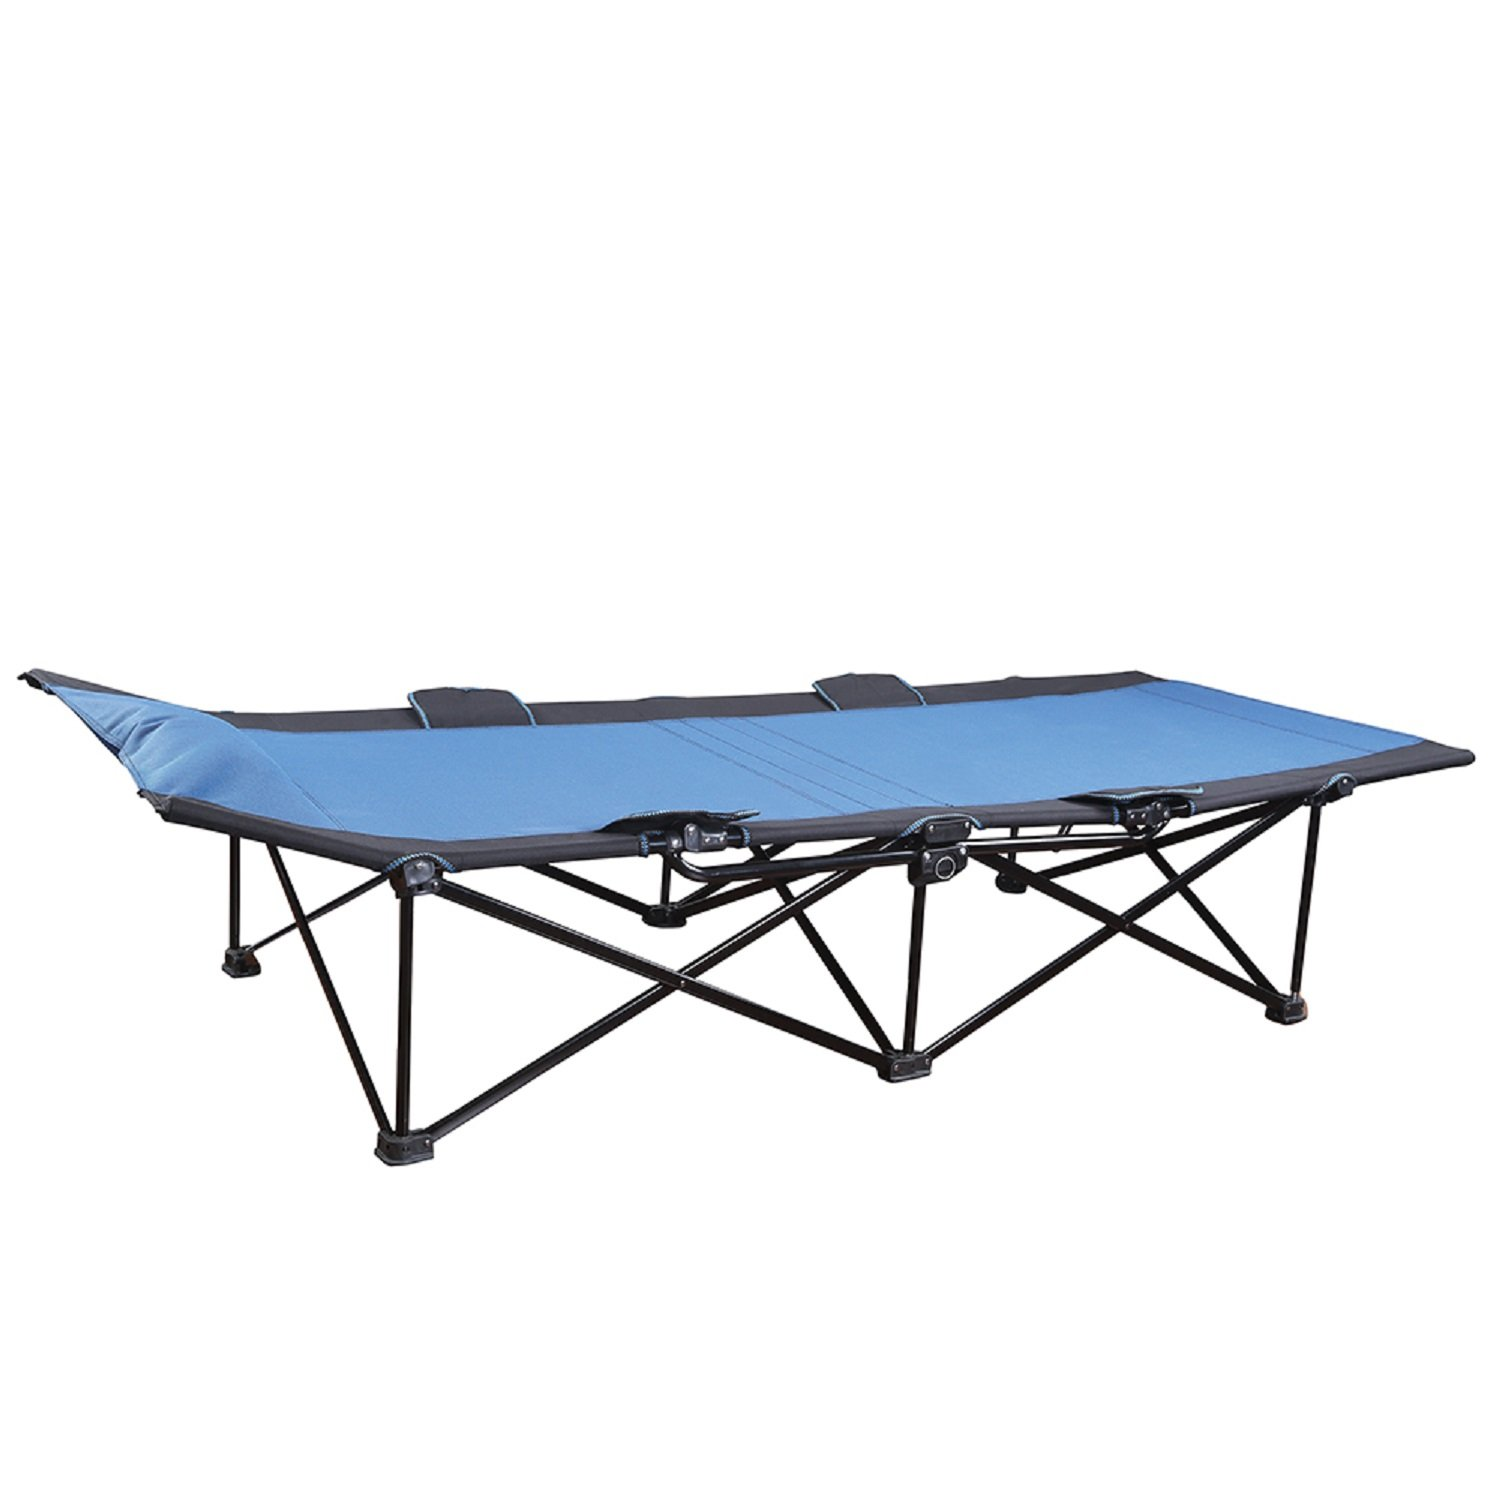 Stansport One-Step Deluxe Cot Blue